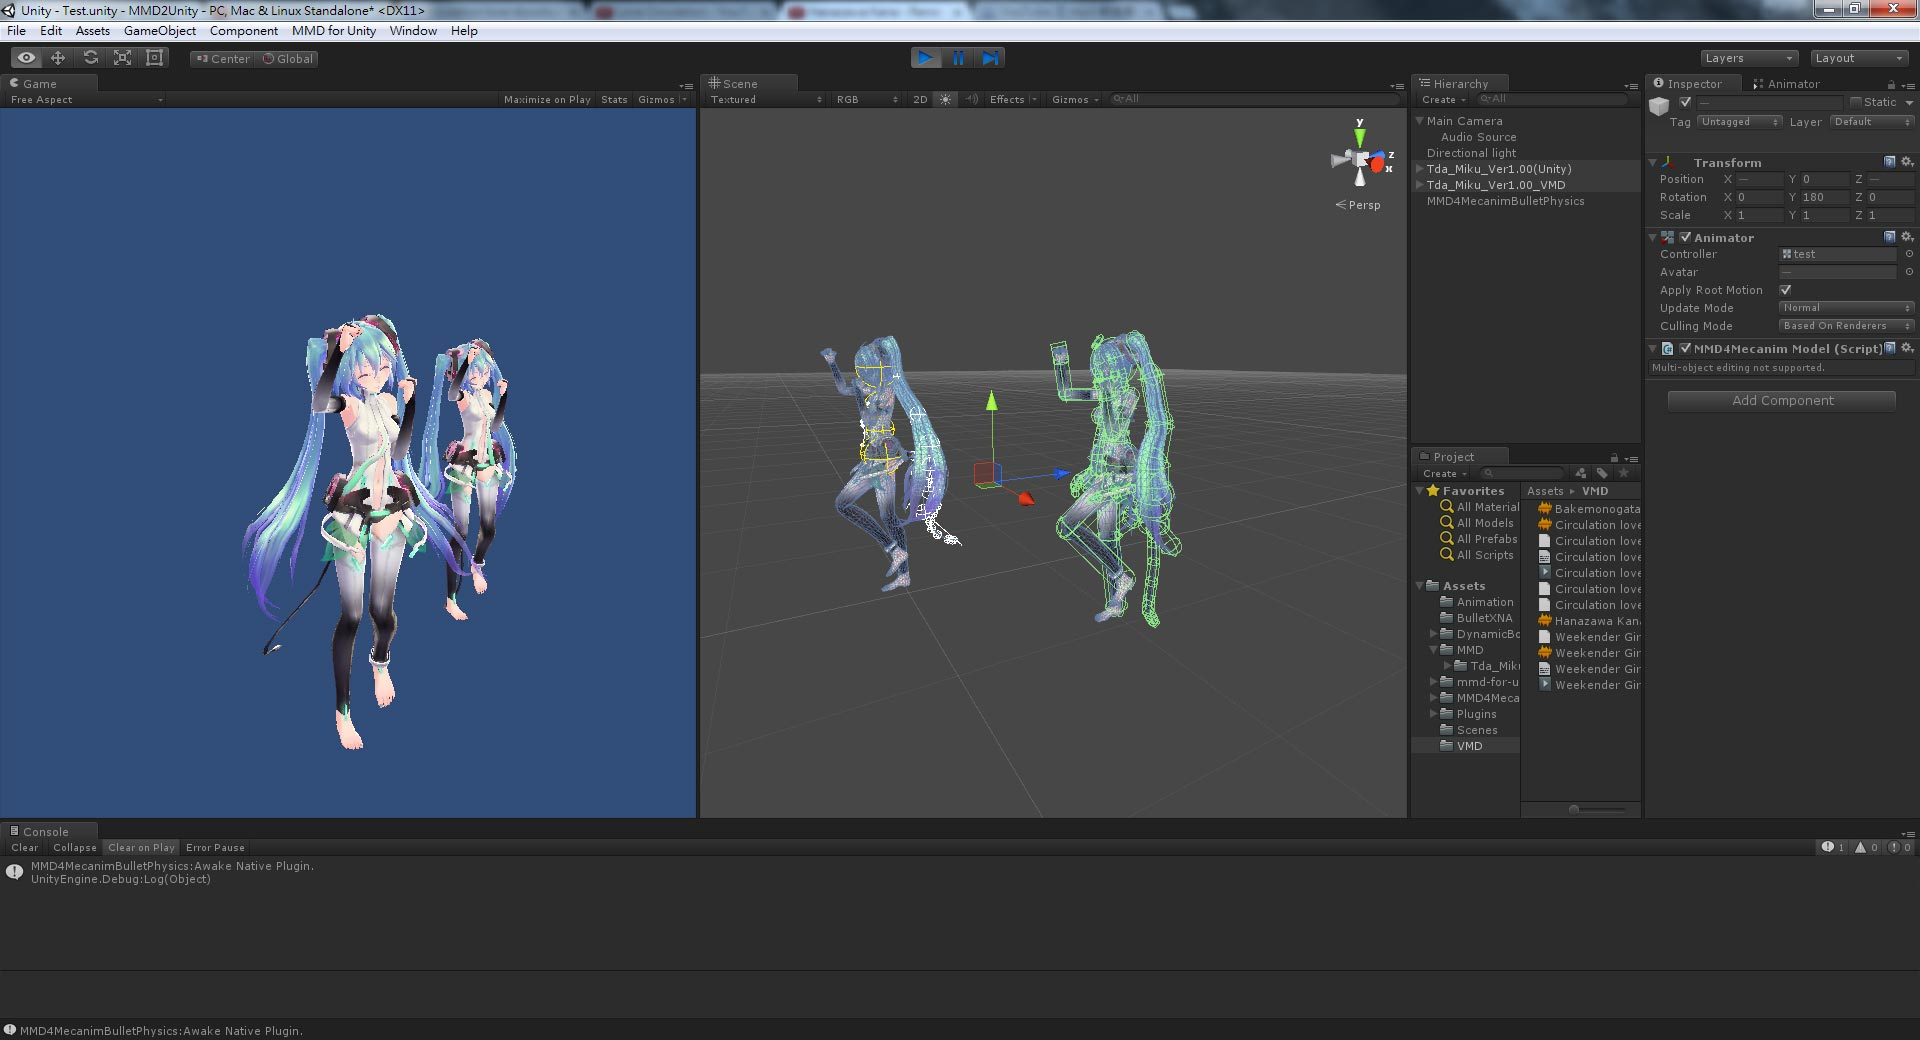 Test case : import file from MMD to Unity3D